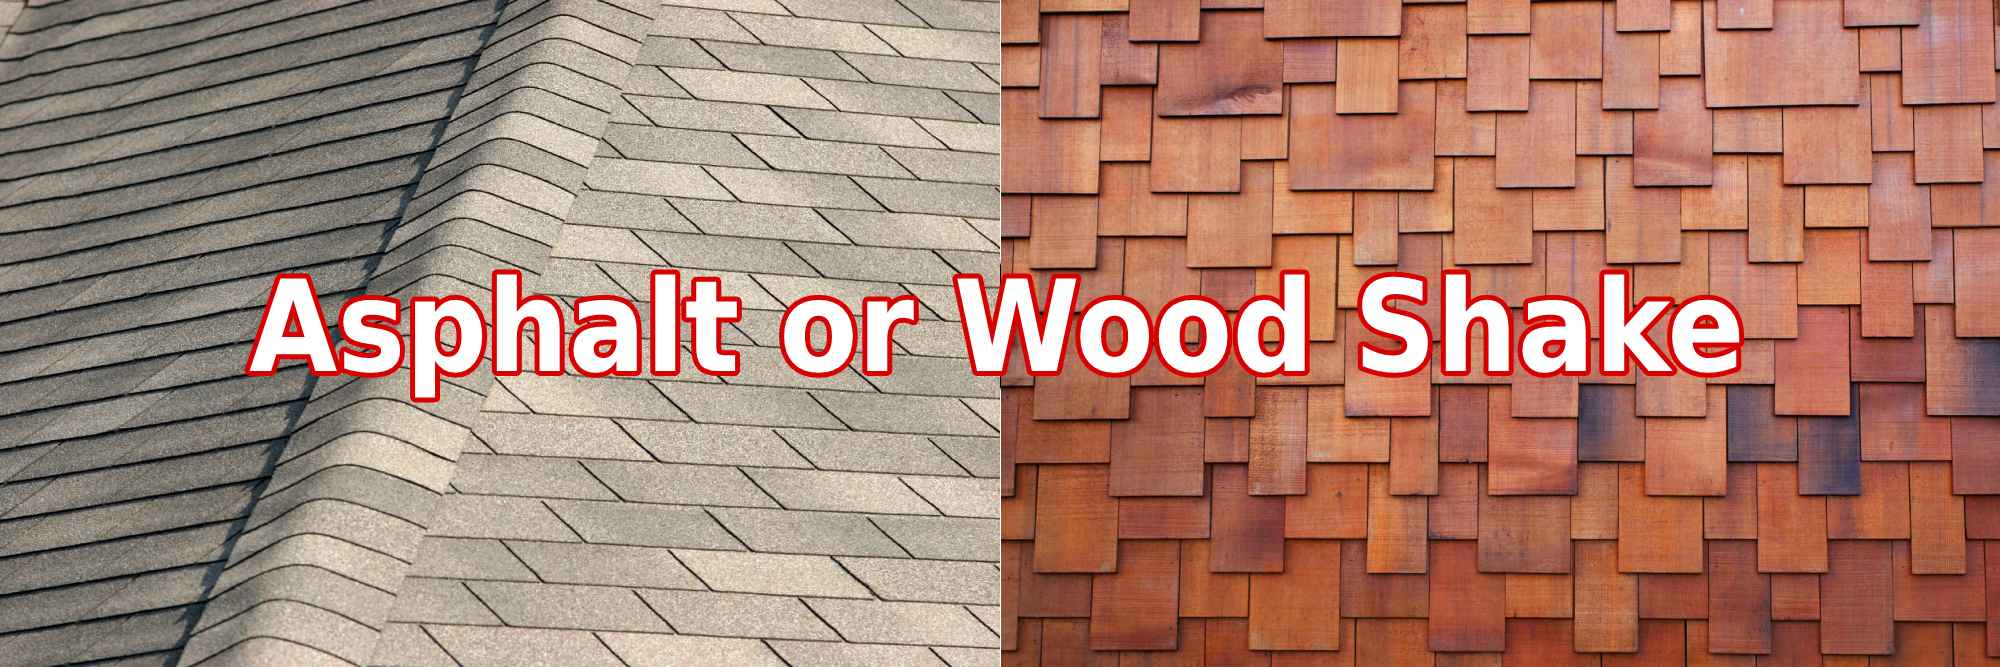 Asphalt or Wood Shake Quiz